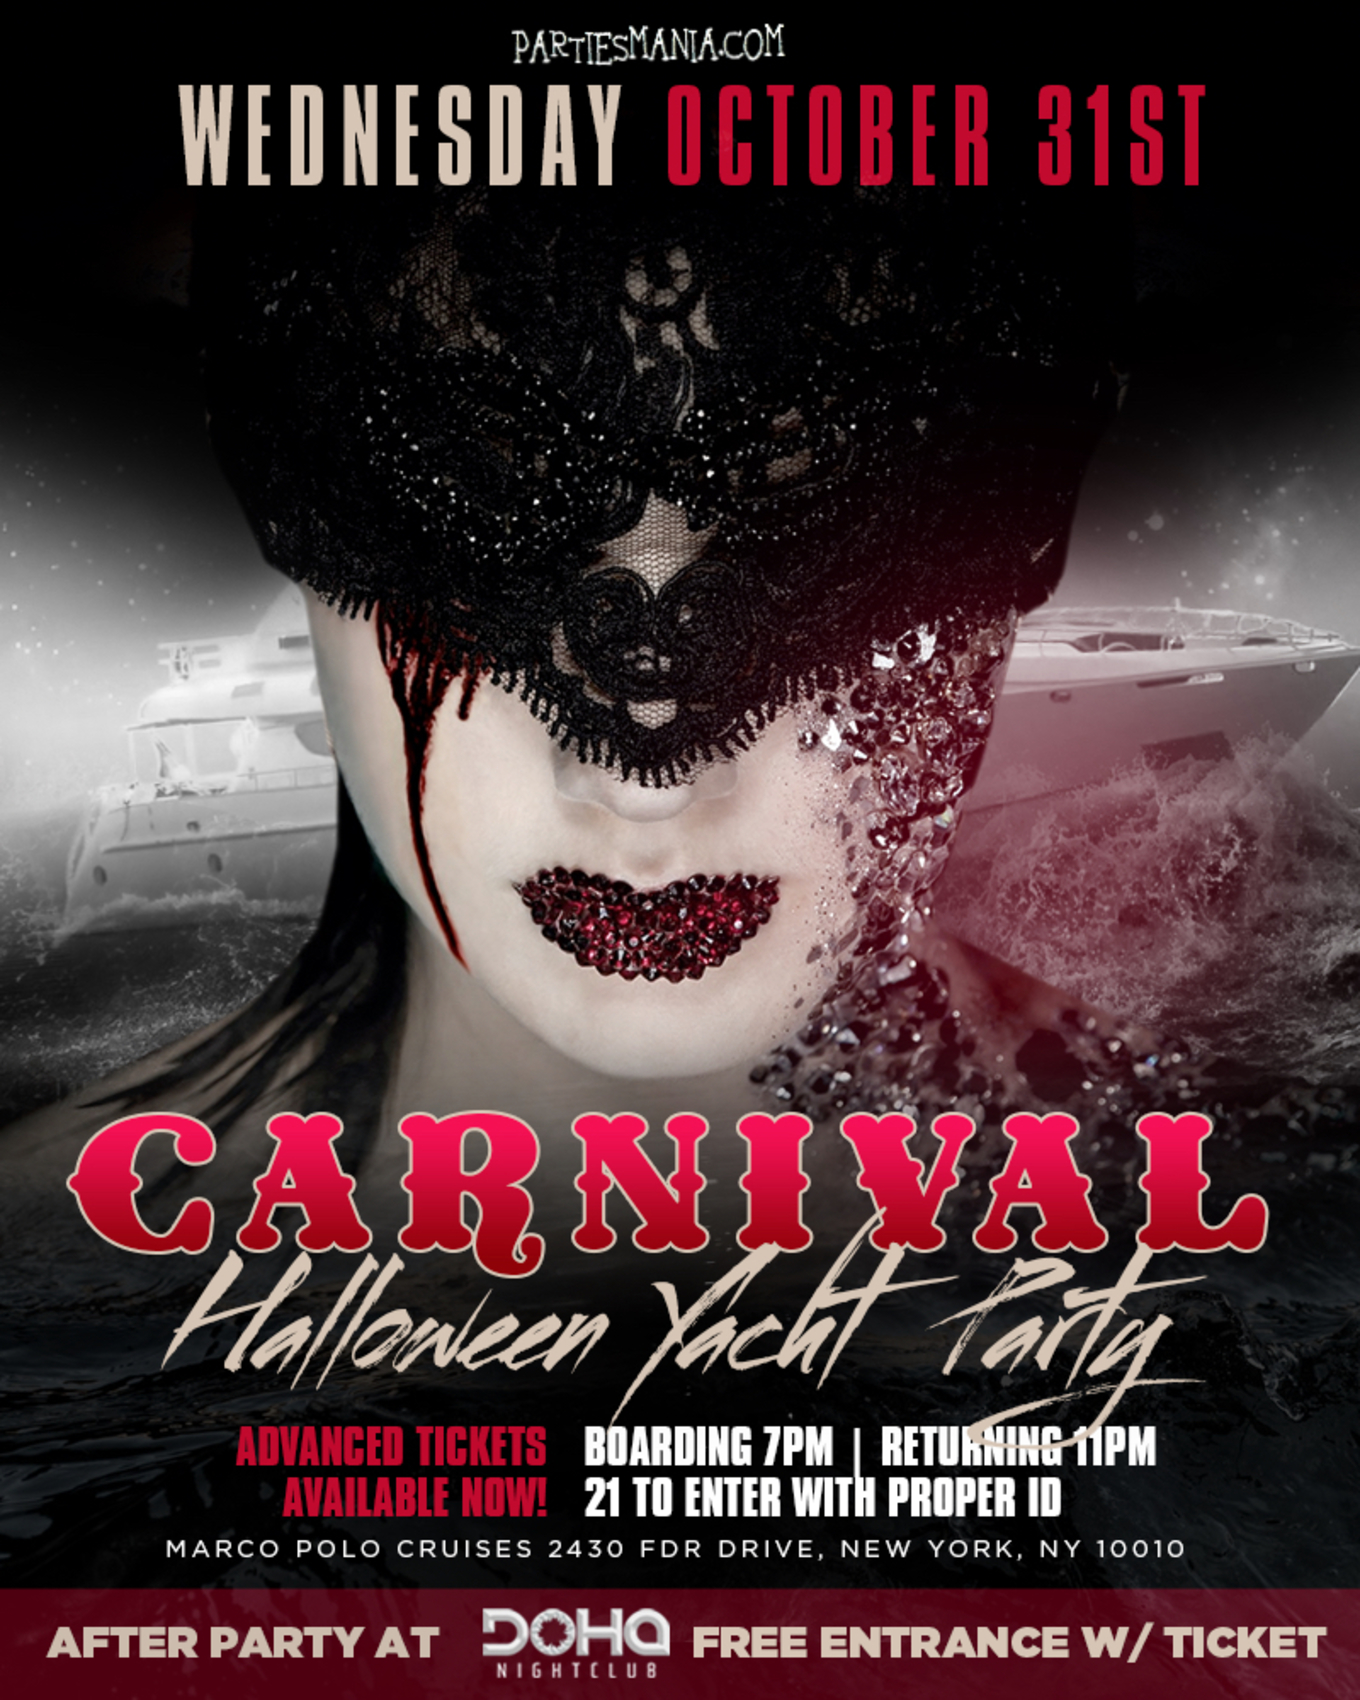 carnival halloween yacht party - tickets - october 31, 2018